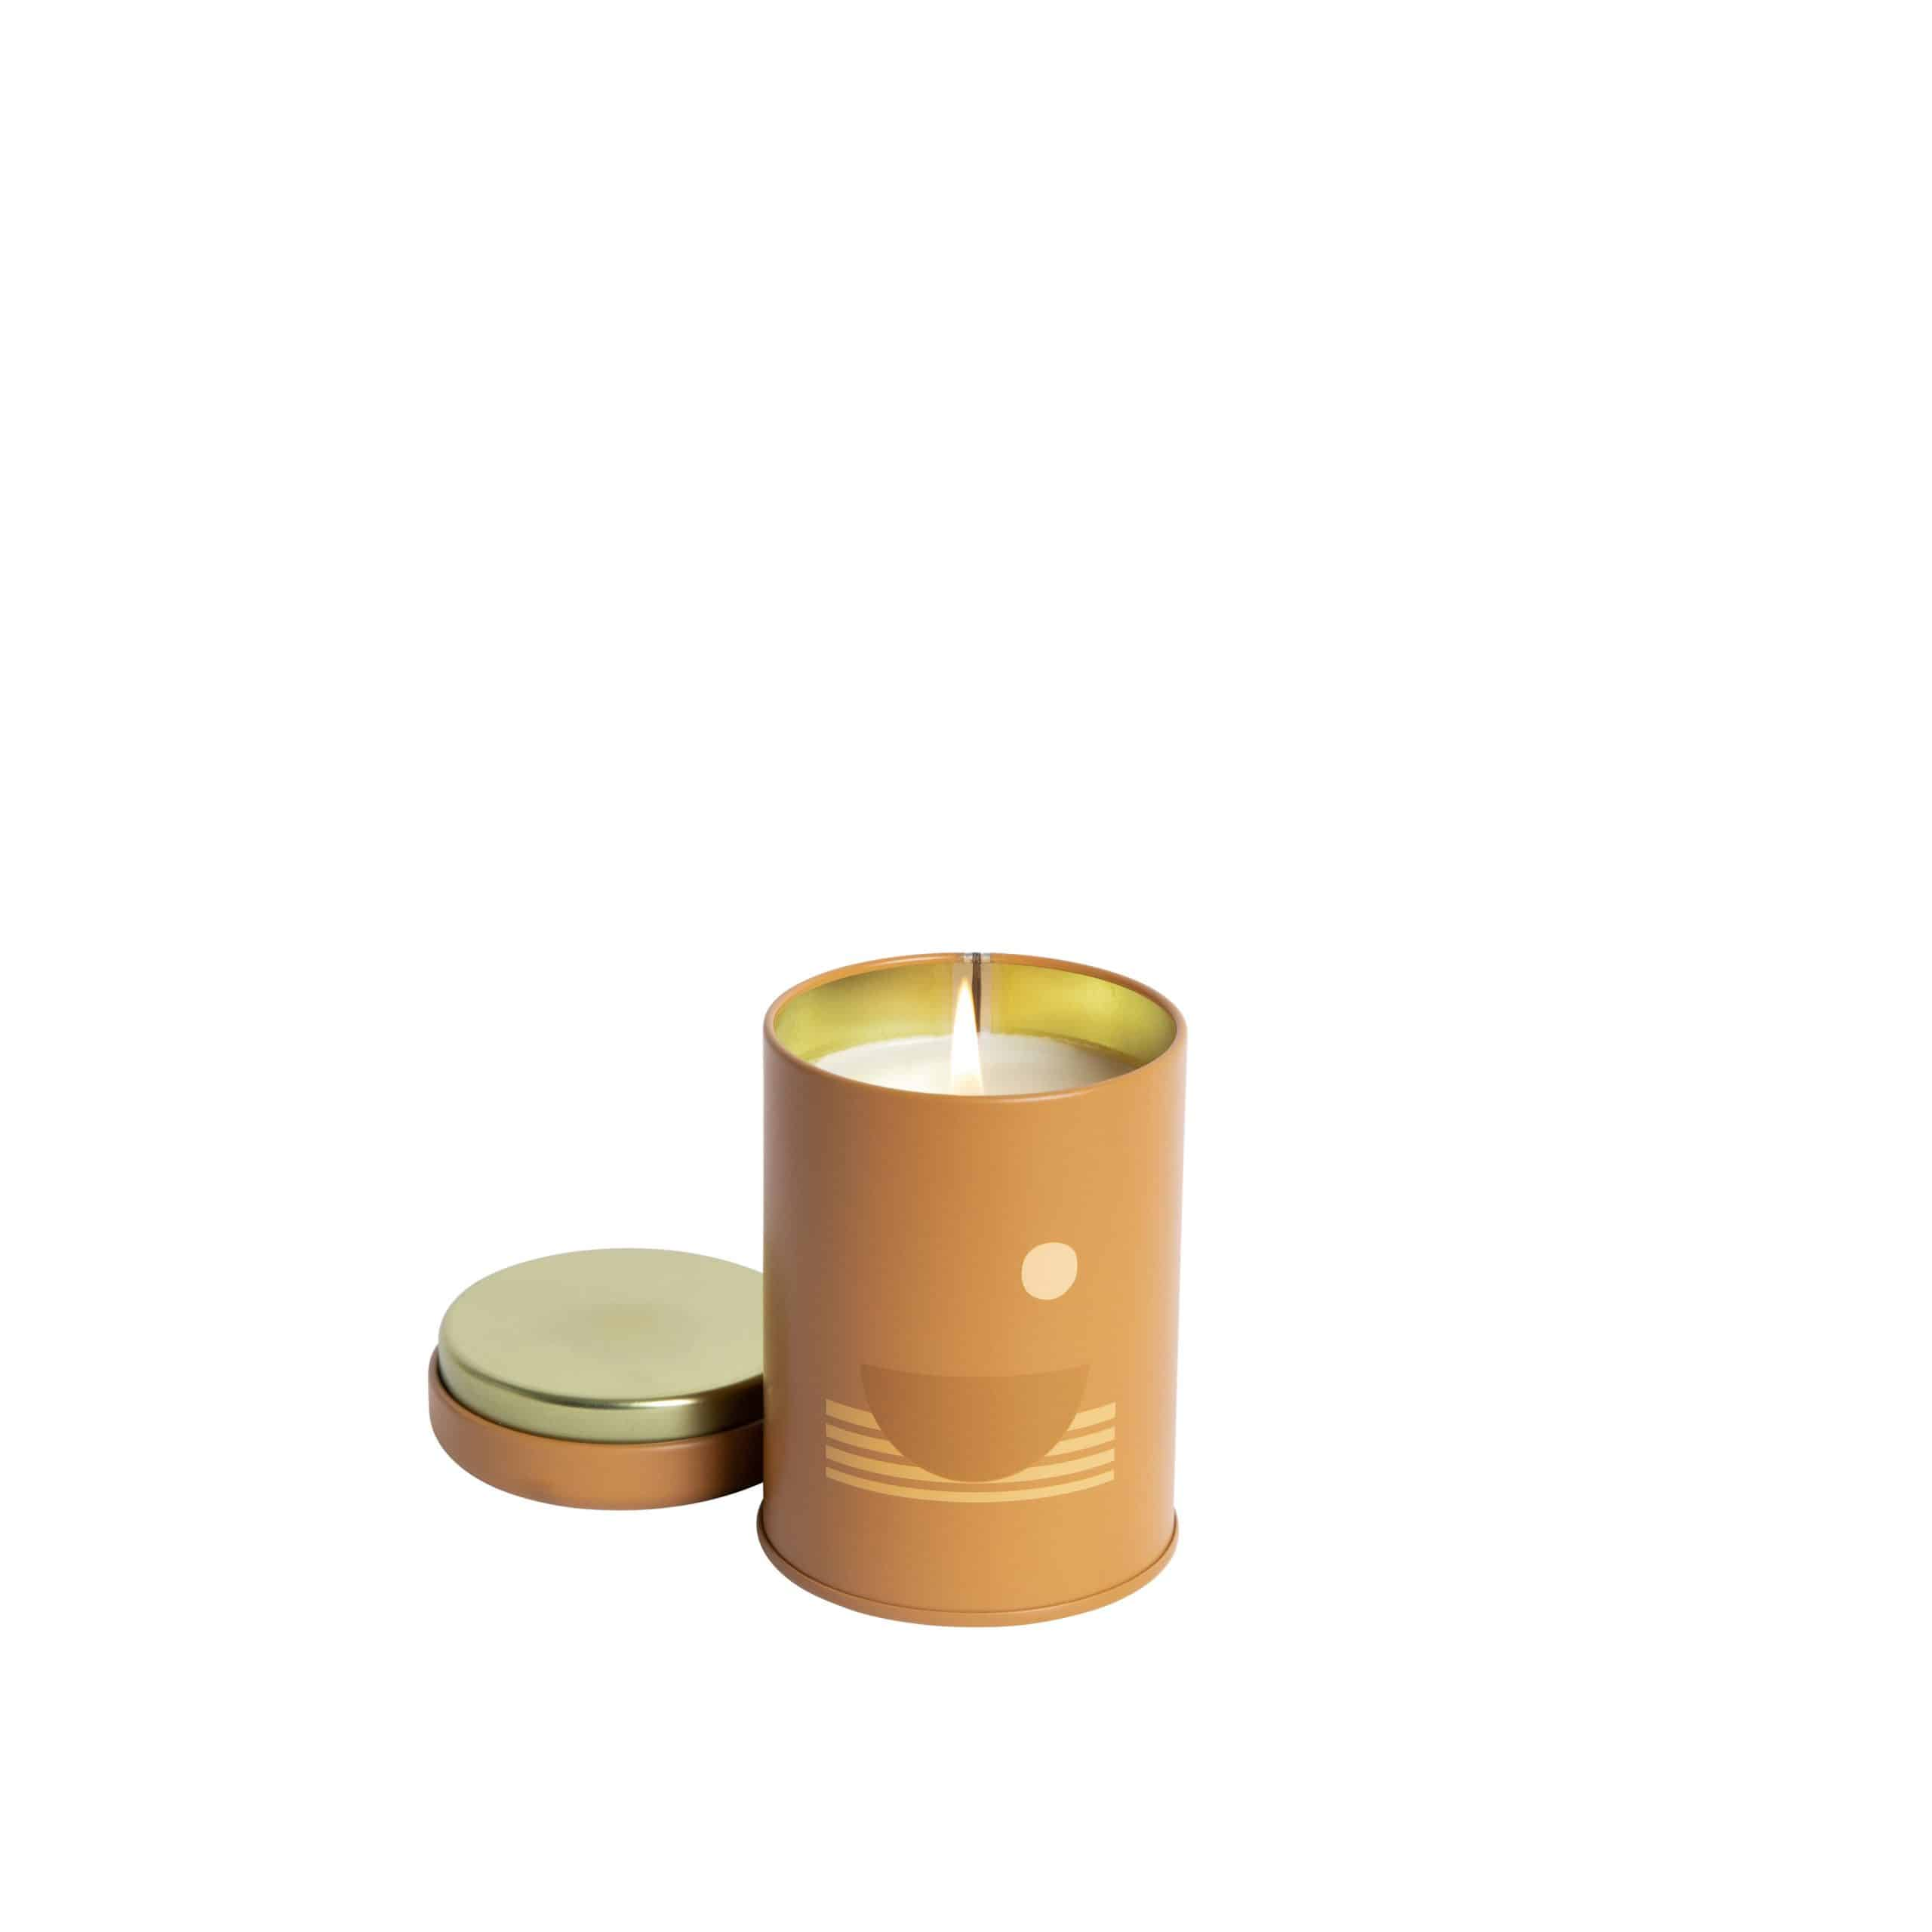 Swell – 10 oz Sunset Soy Candle